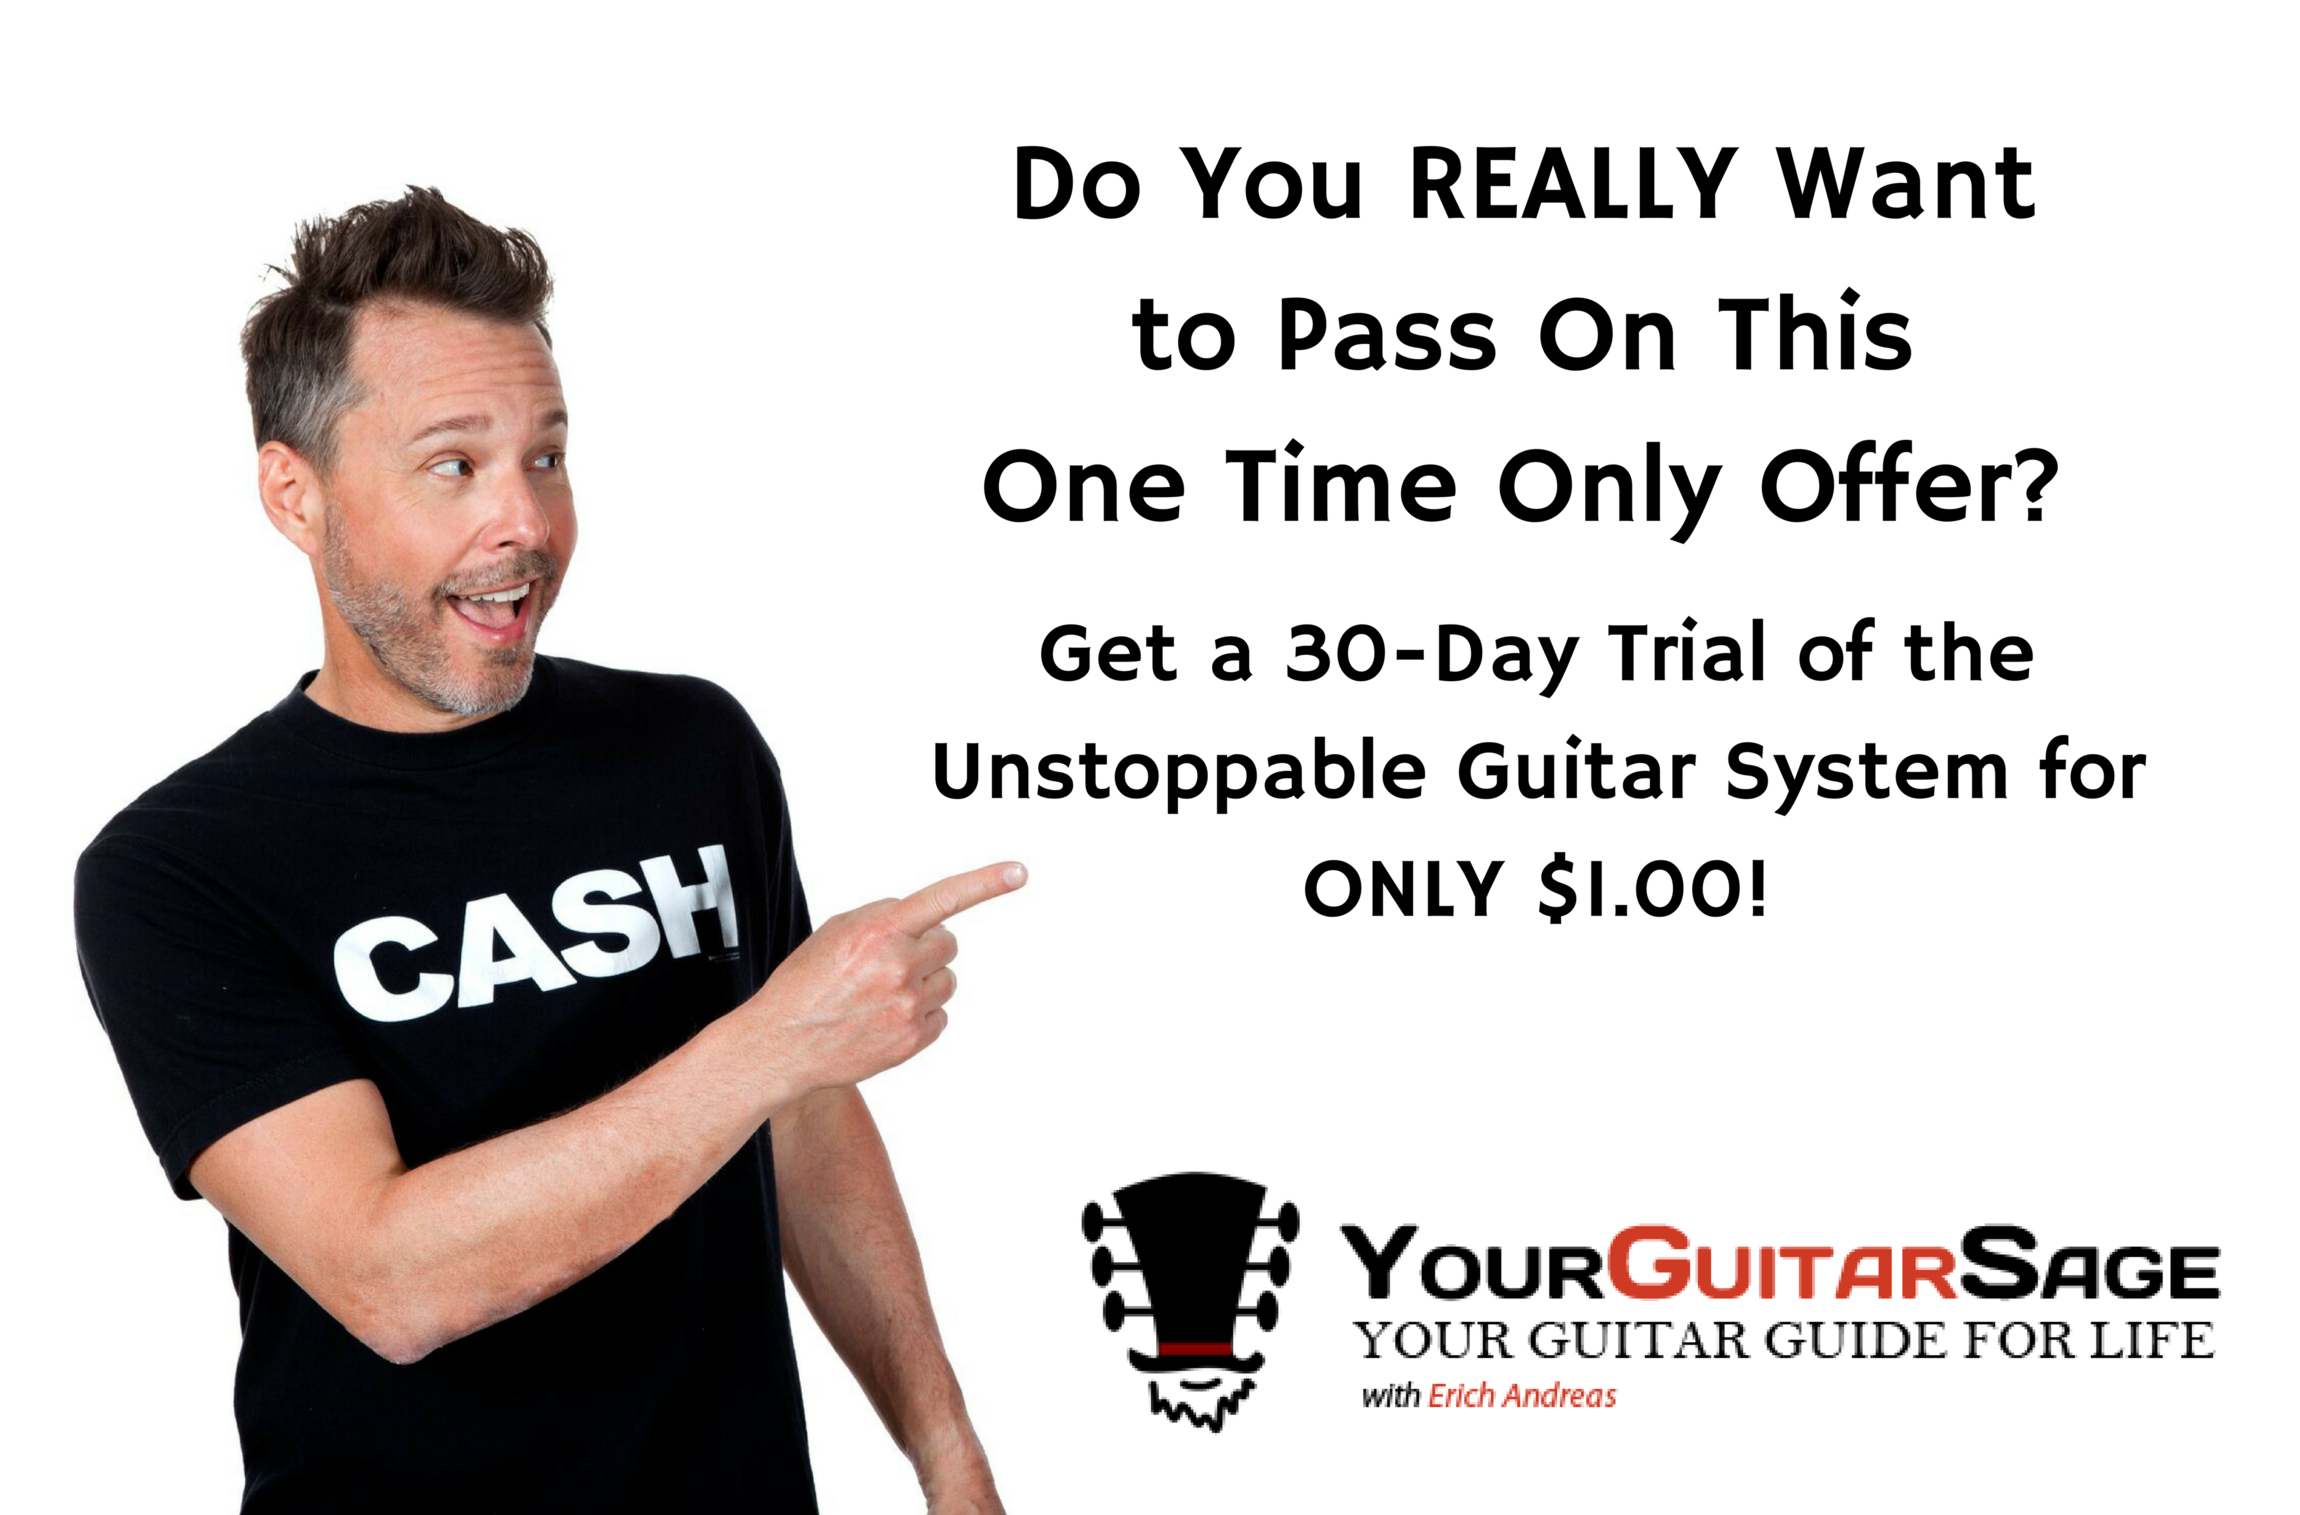 Unstoppable Guitar System Trial